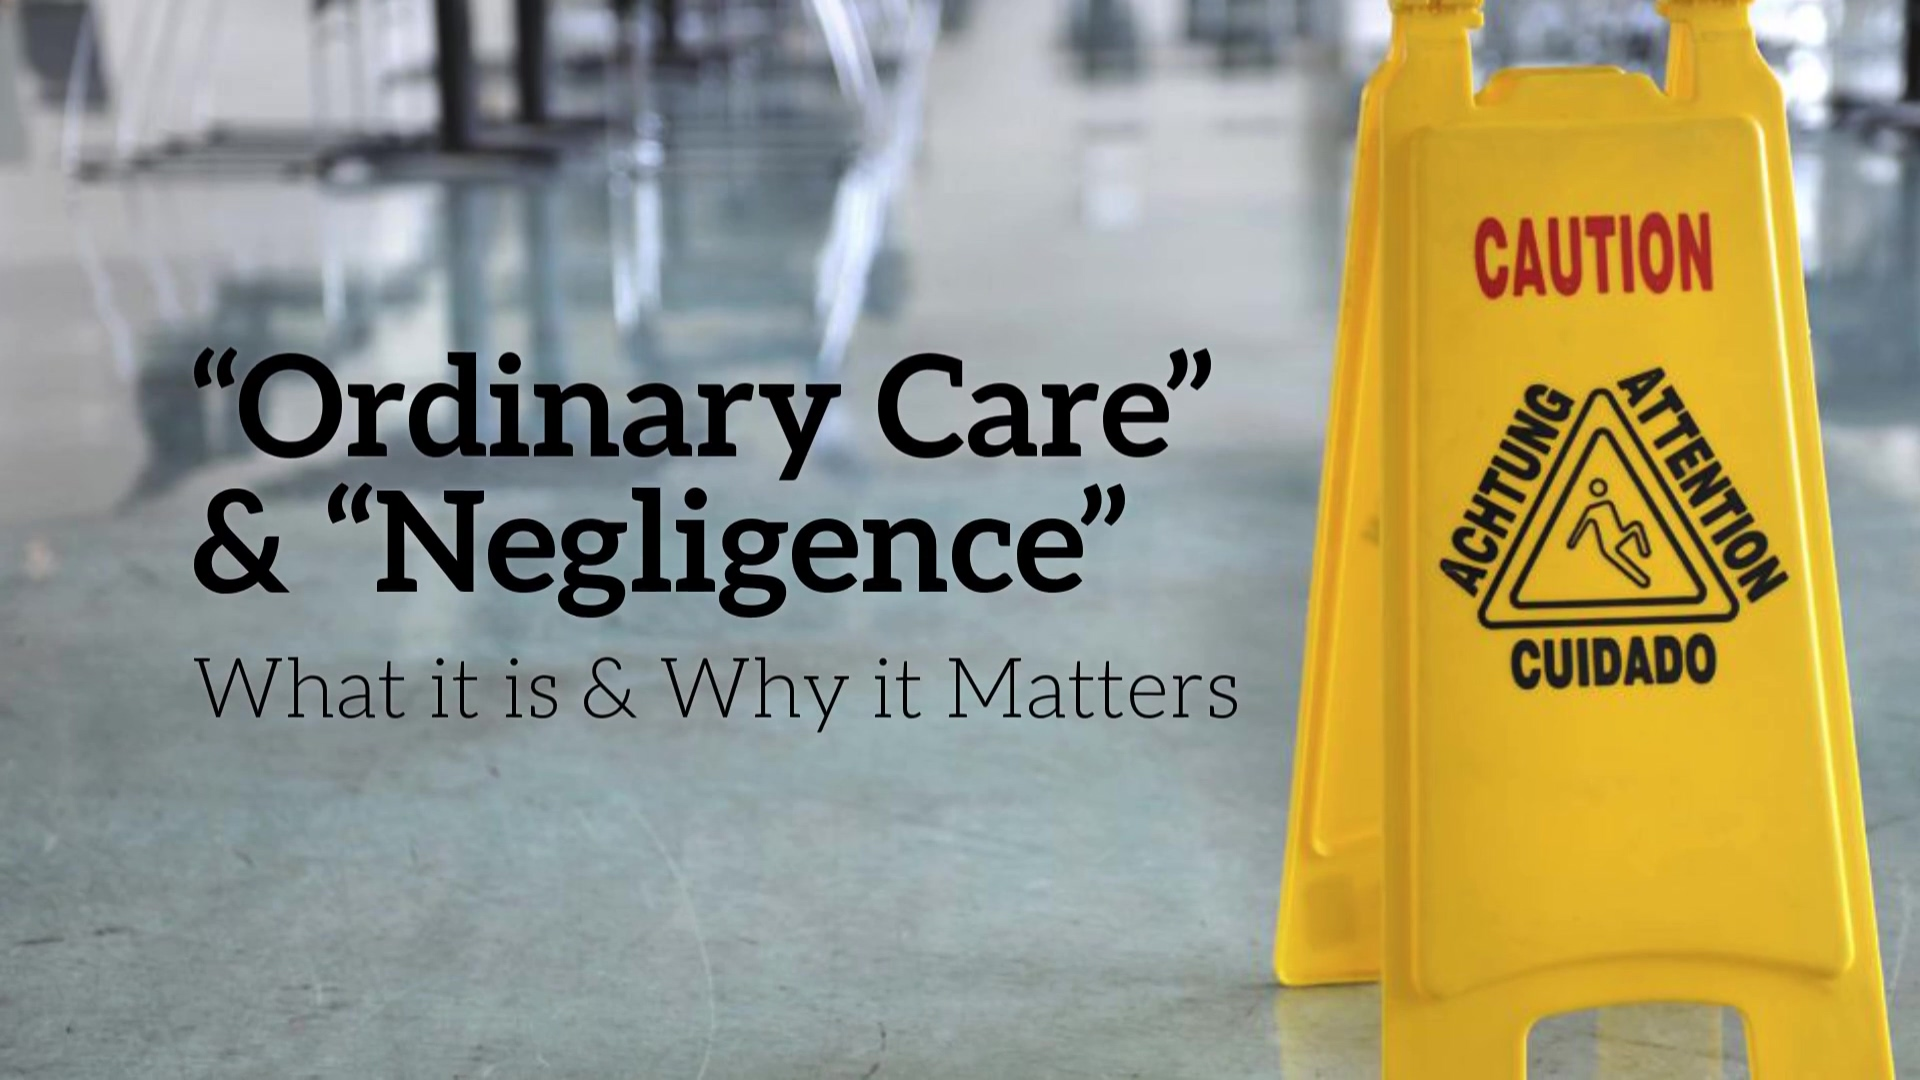 ordinary_care__negligence_1080p (2)